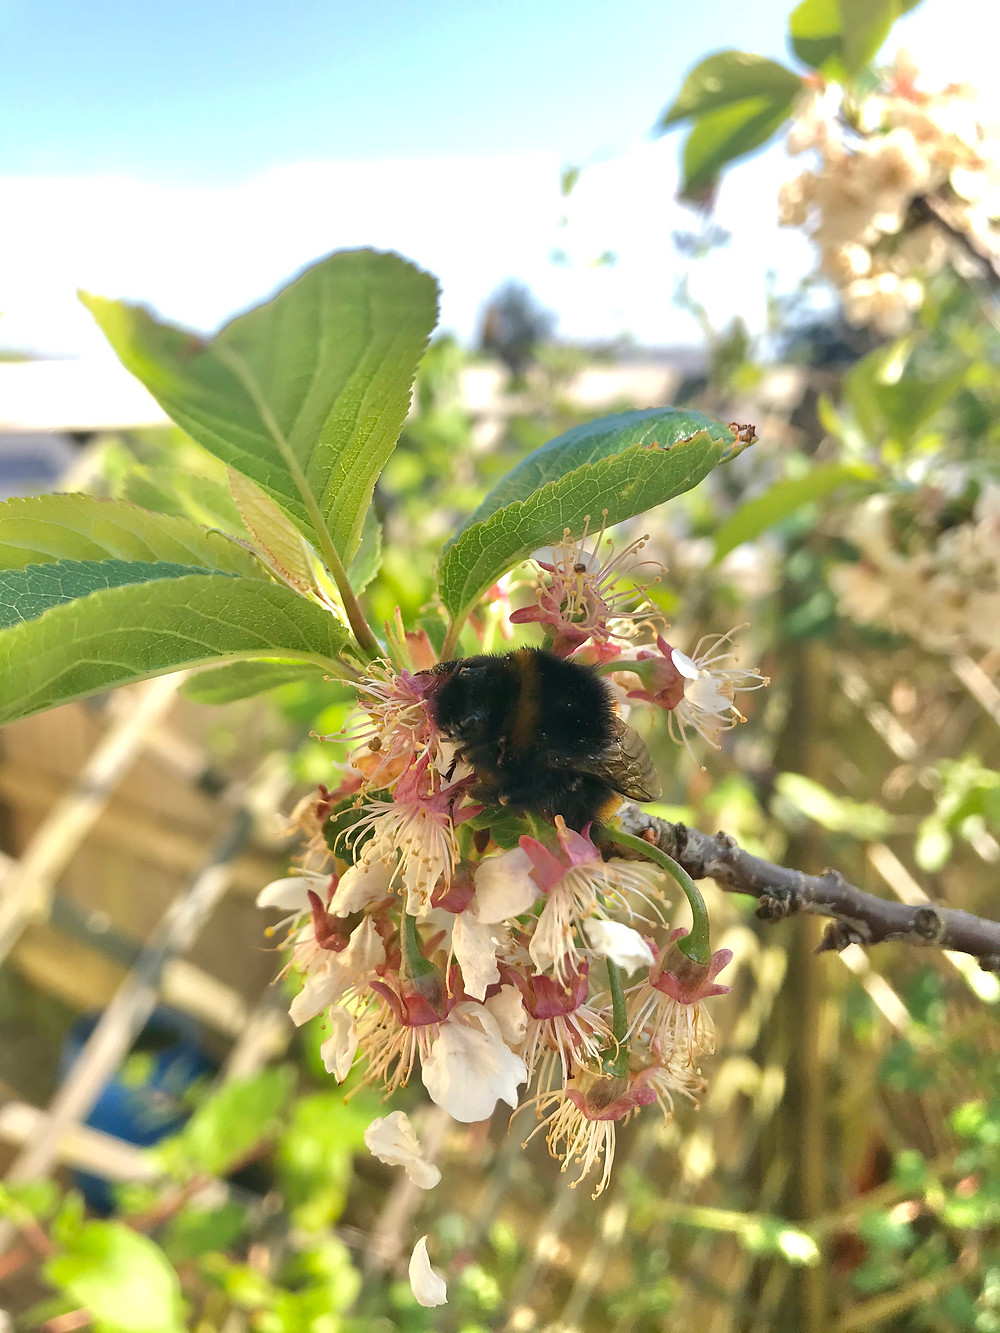 A bumble bee resting on a cherry blossom